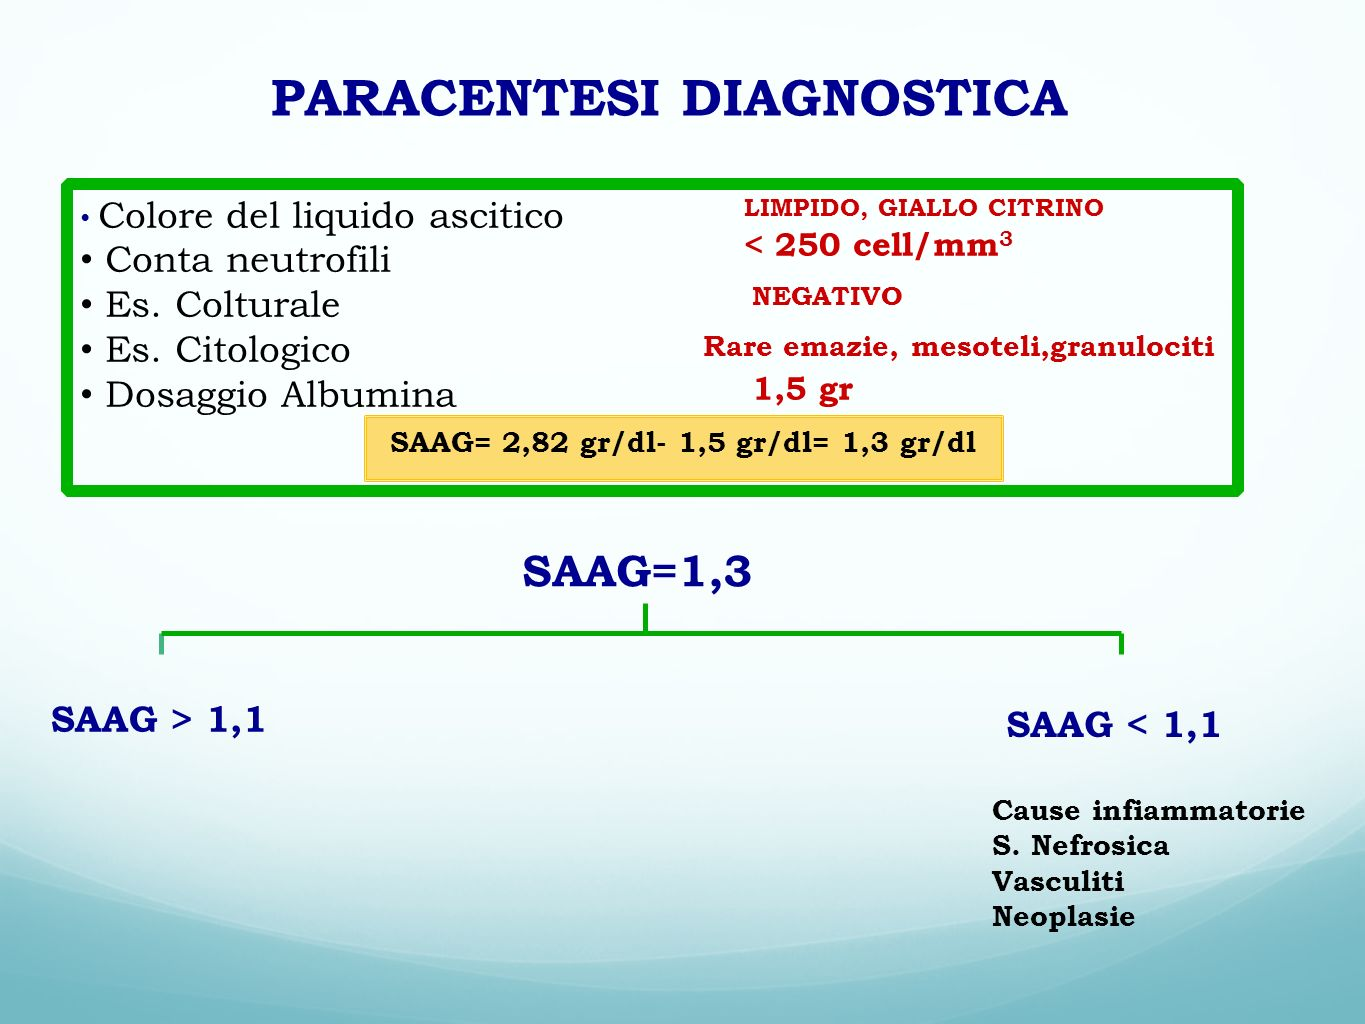 PARACENTESI DIAGNOSTICA SAAG= 2,82 gr/dl- 1,5 gr/dl= 1,3 gr/dl